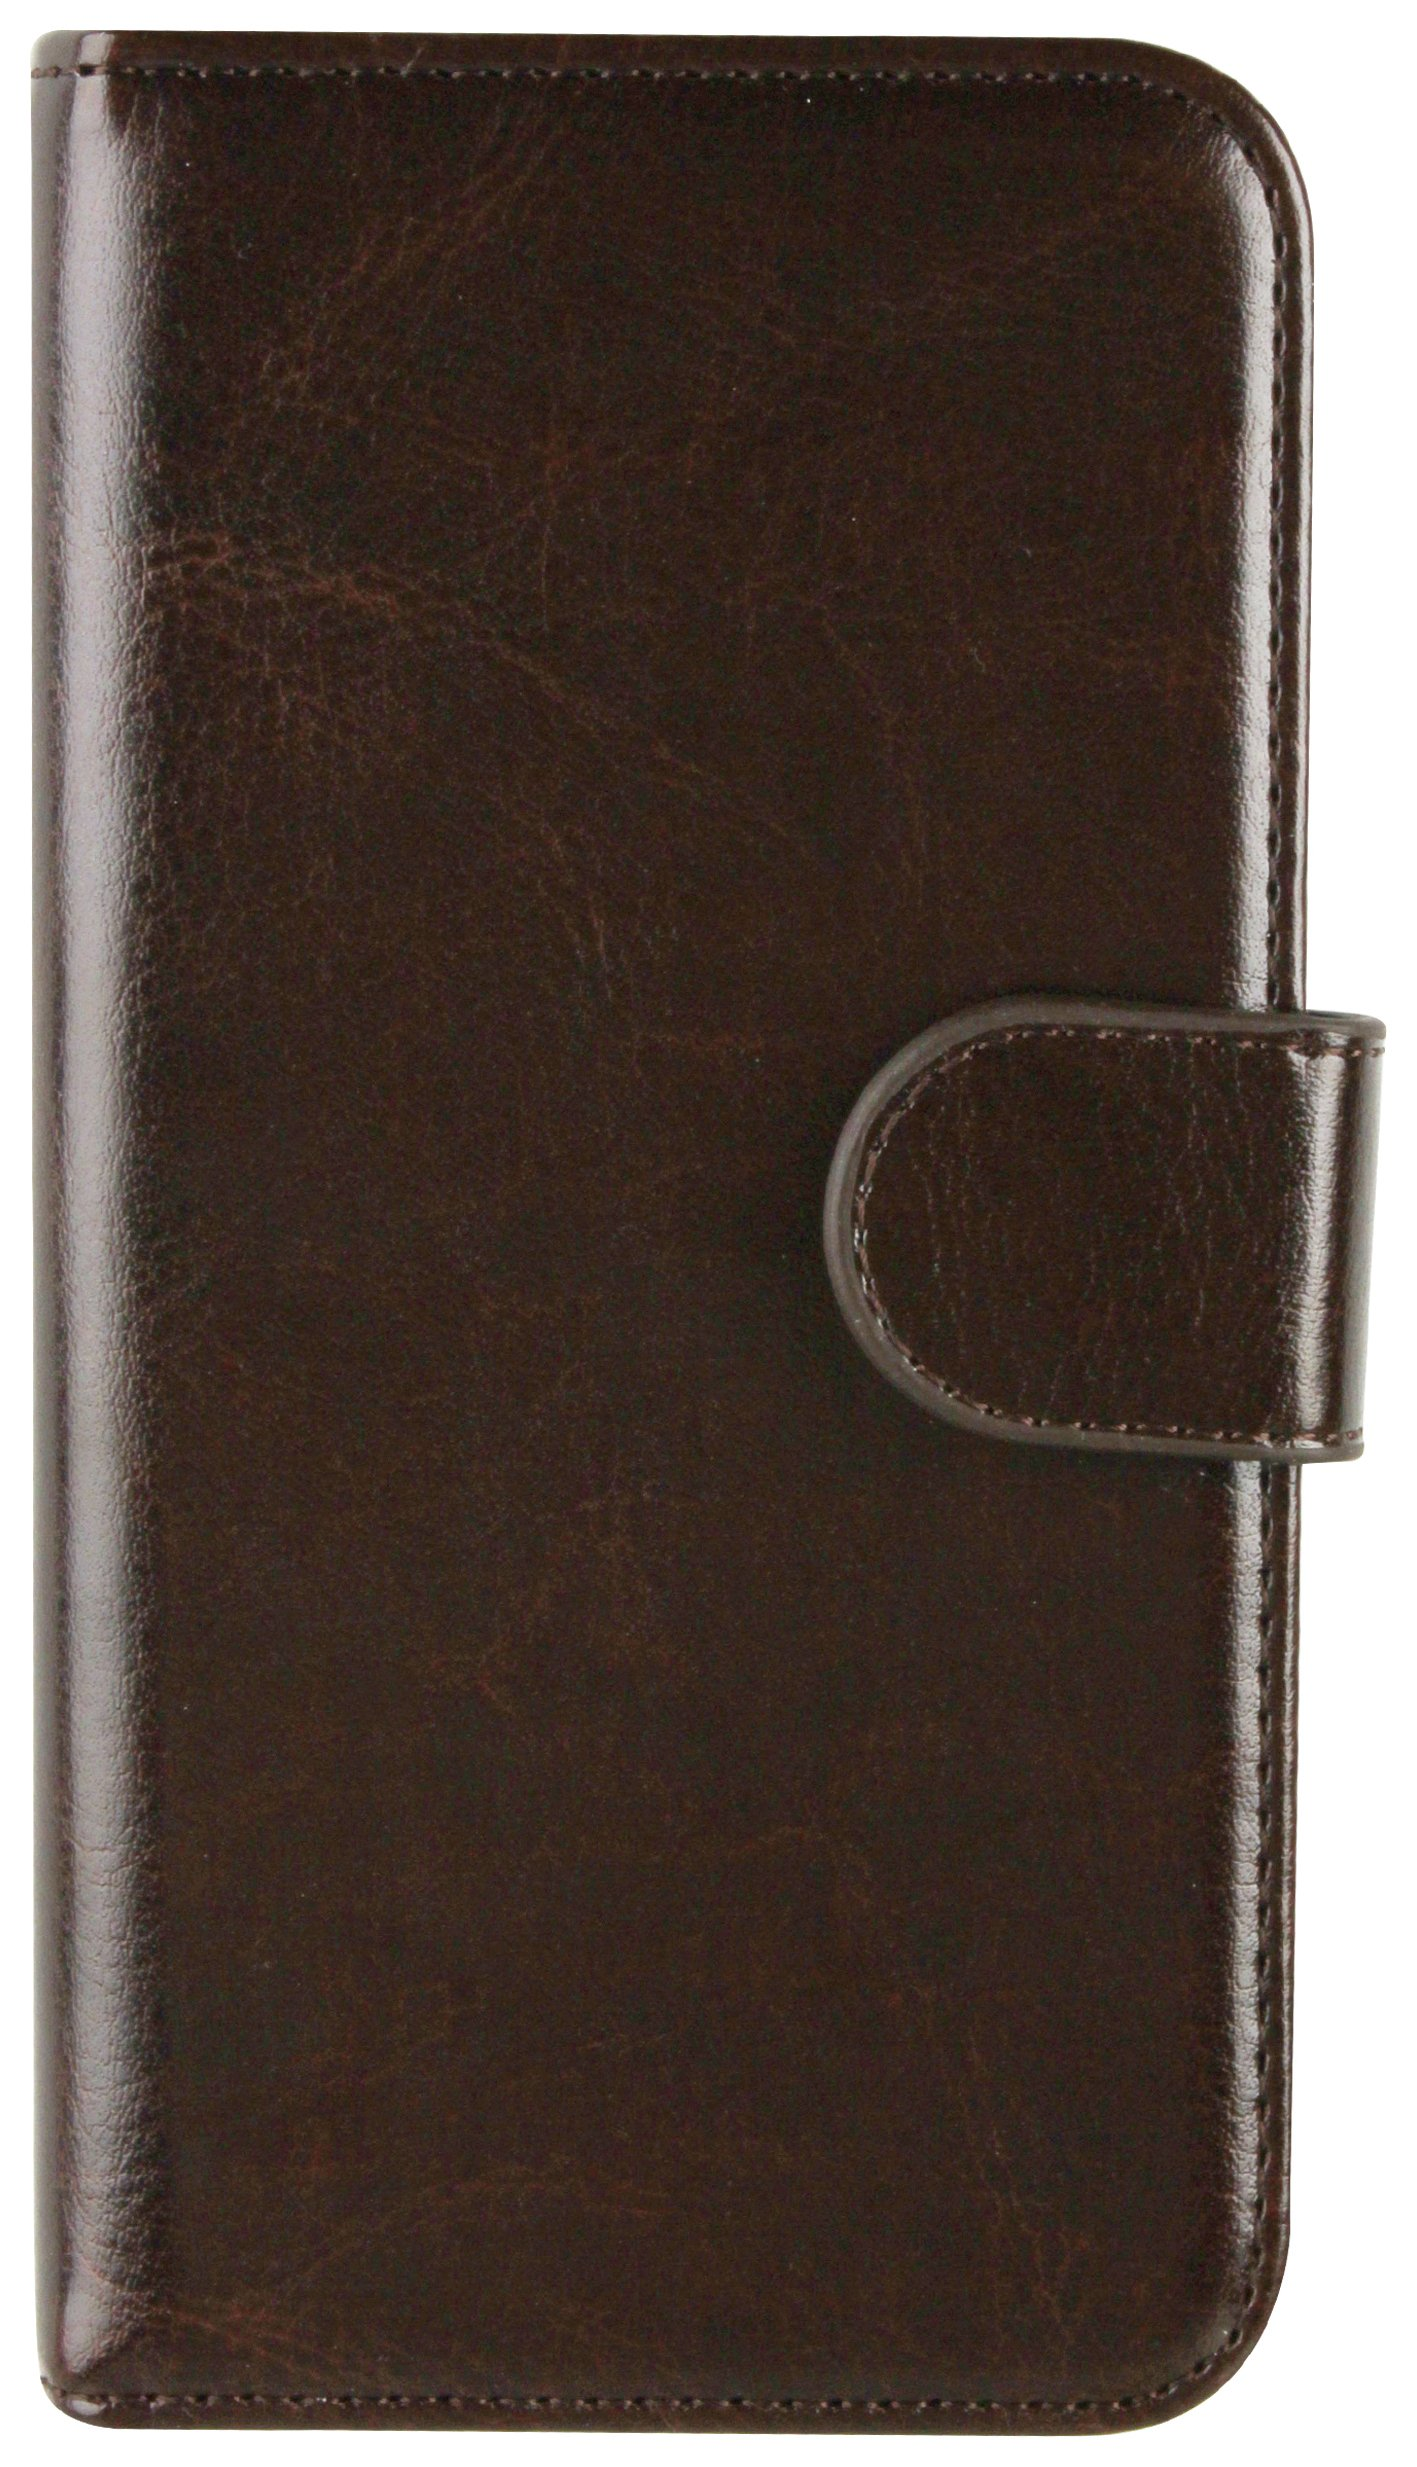 Xqisit Xqisit Wallet Case Eman for Samsung Galaxy S6 - Brown